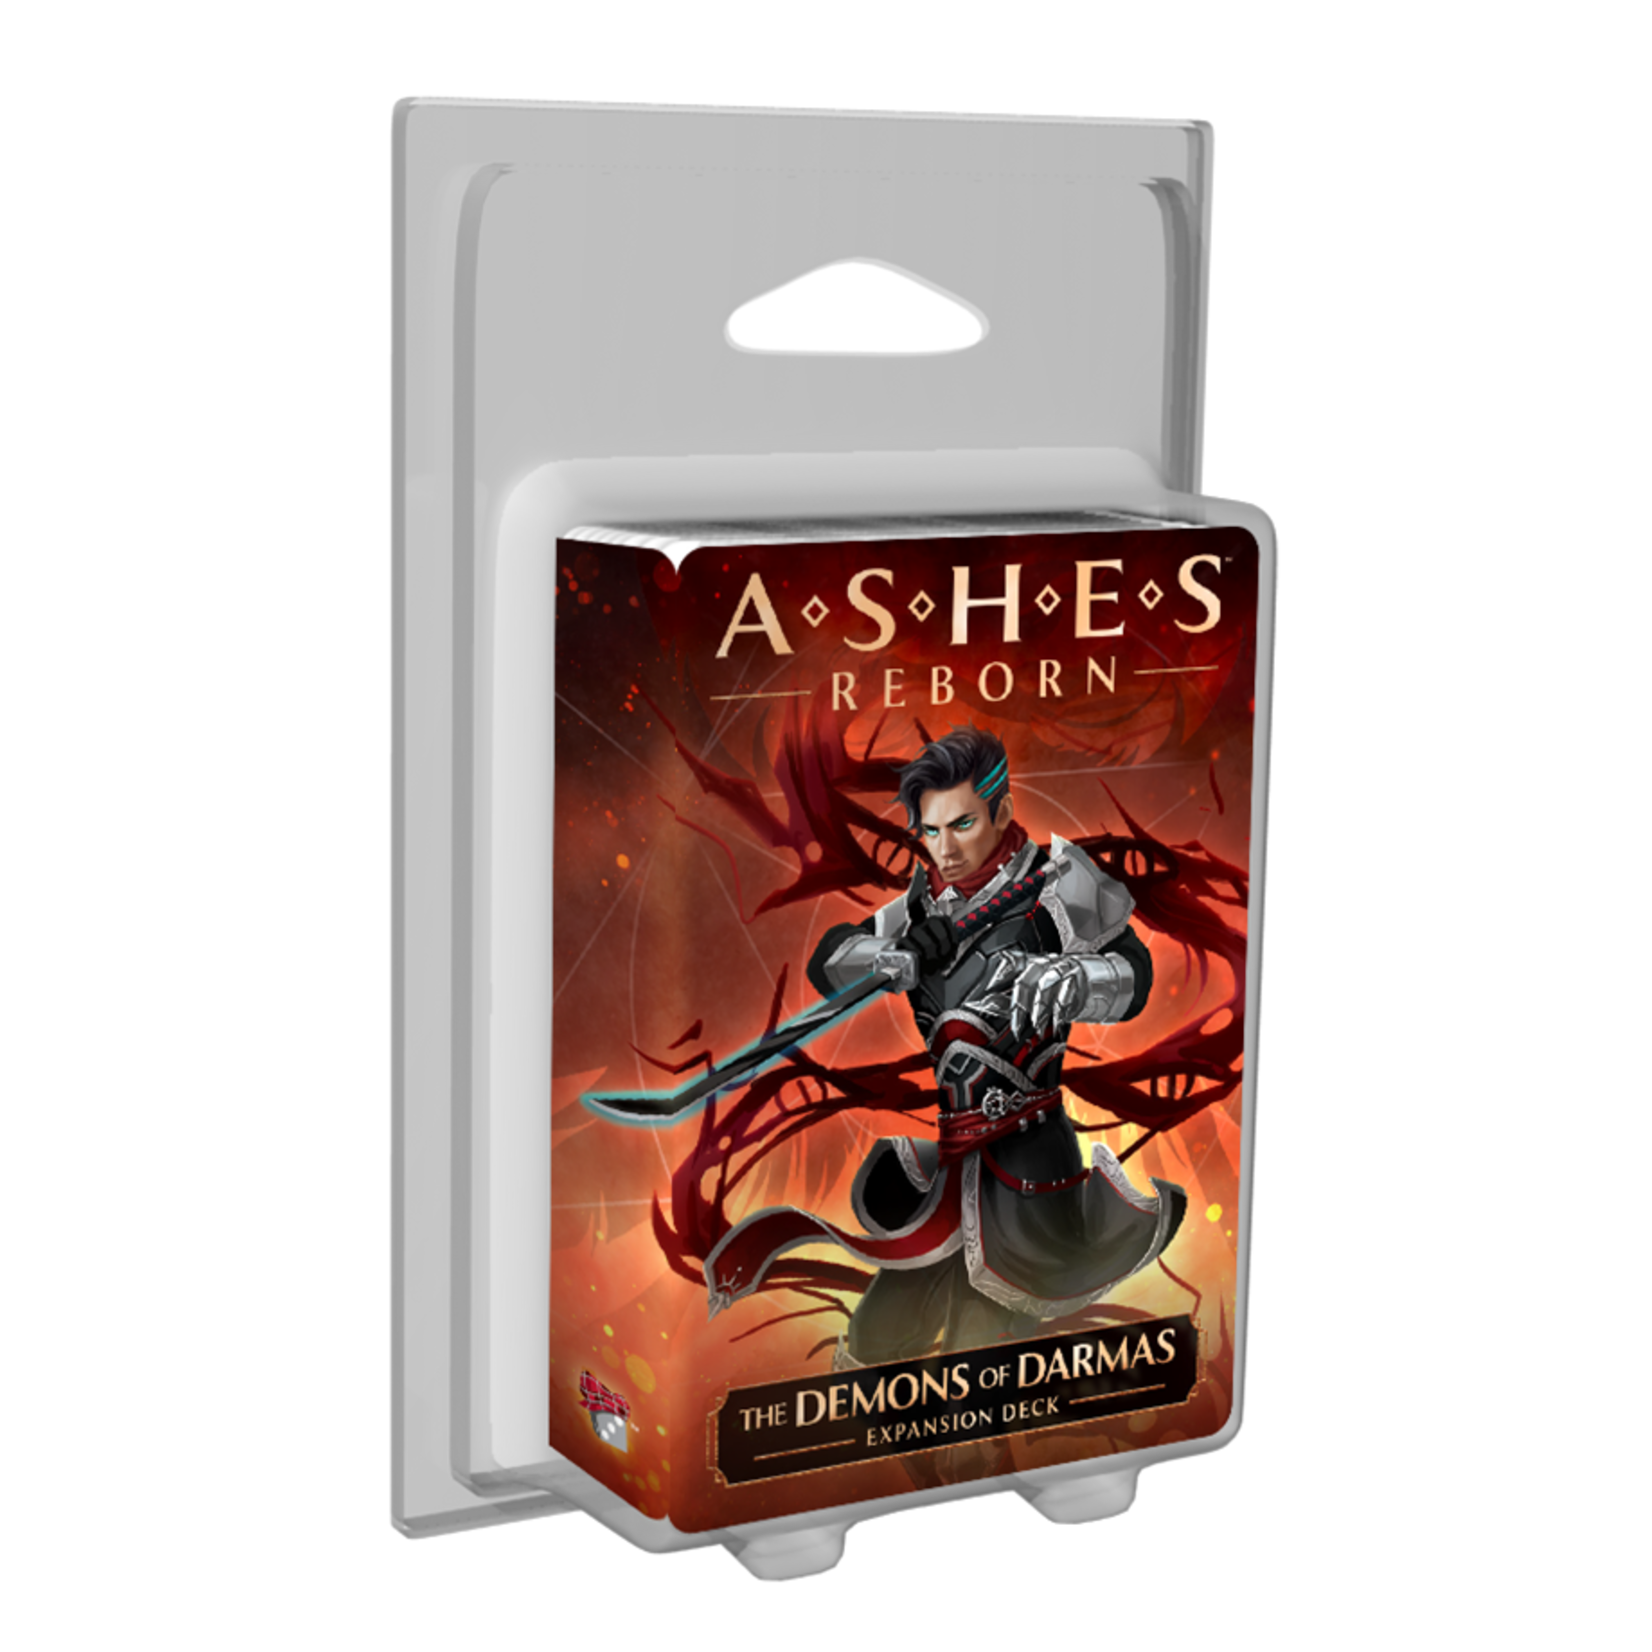 Plaid Hat Games Ashes: Reborn - The Demons of Darmas Expansion Deck